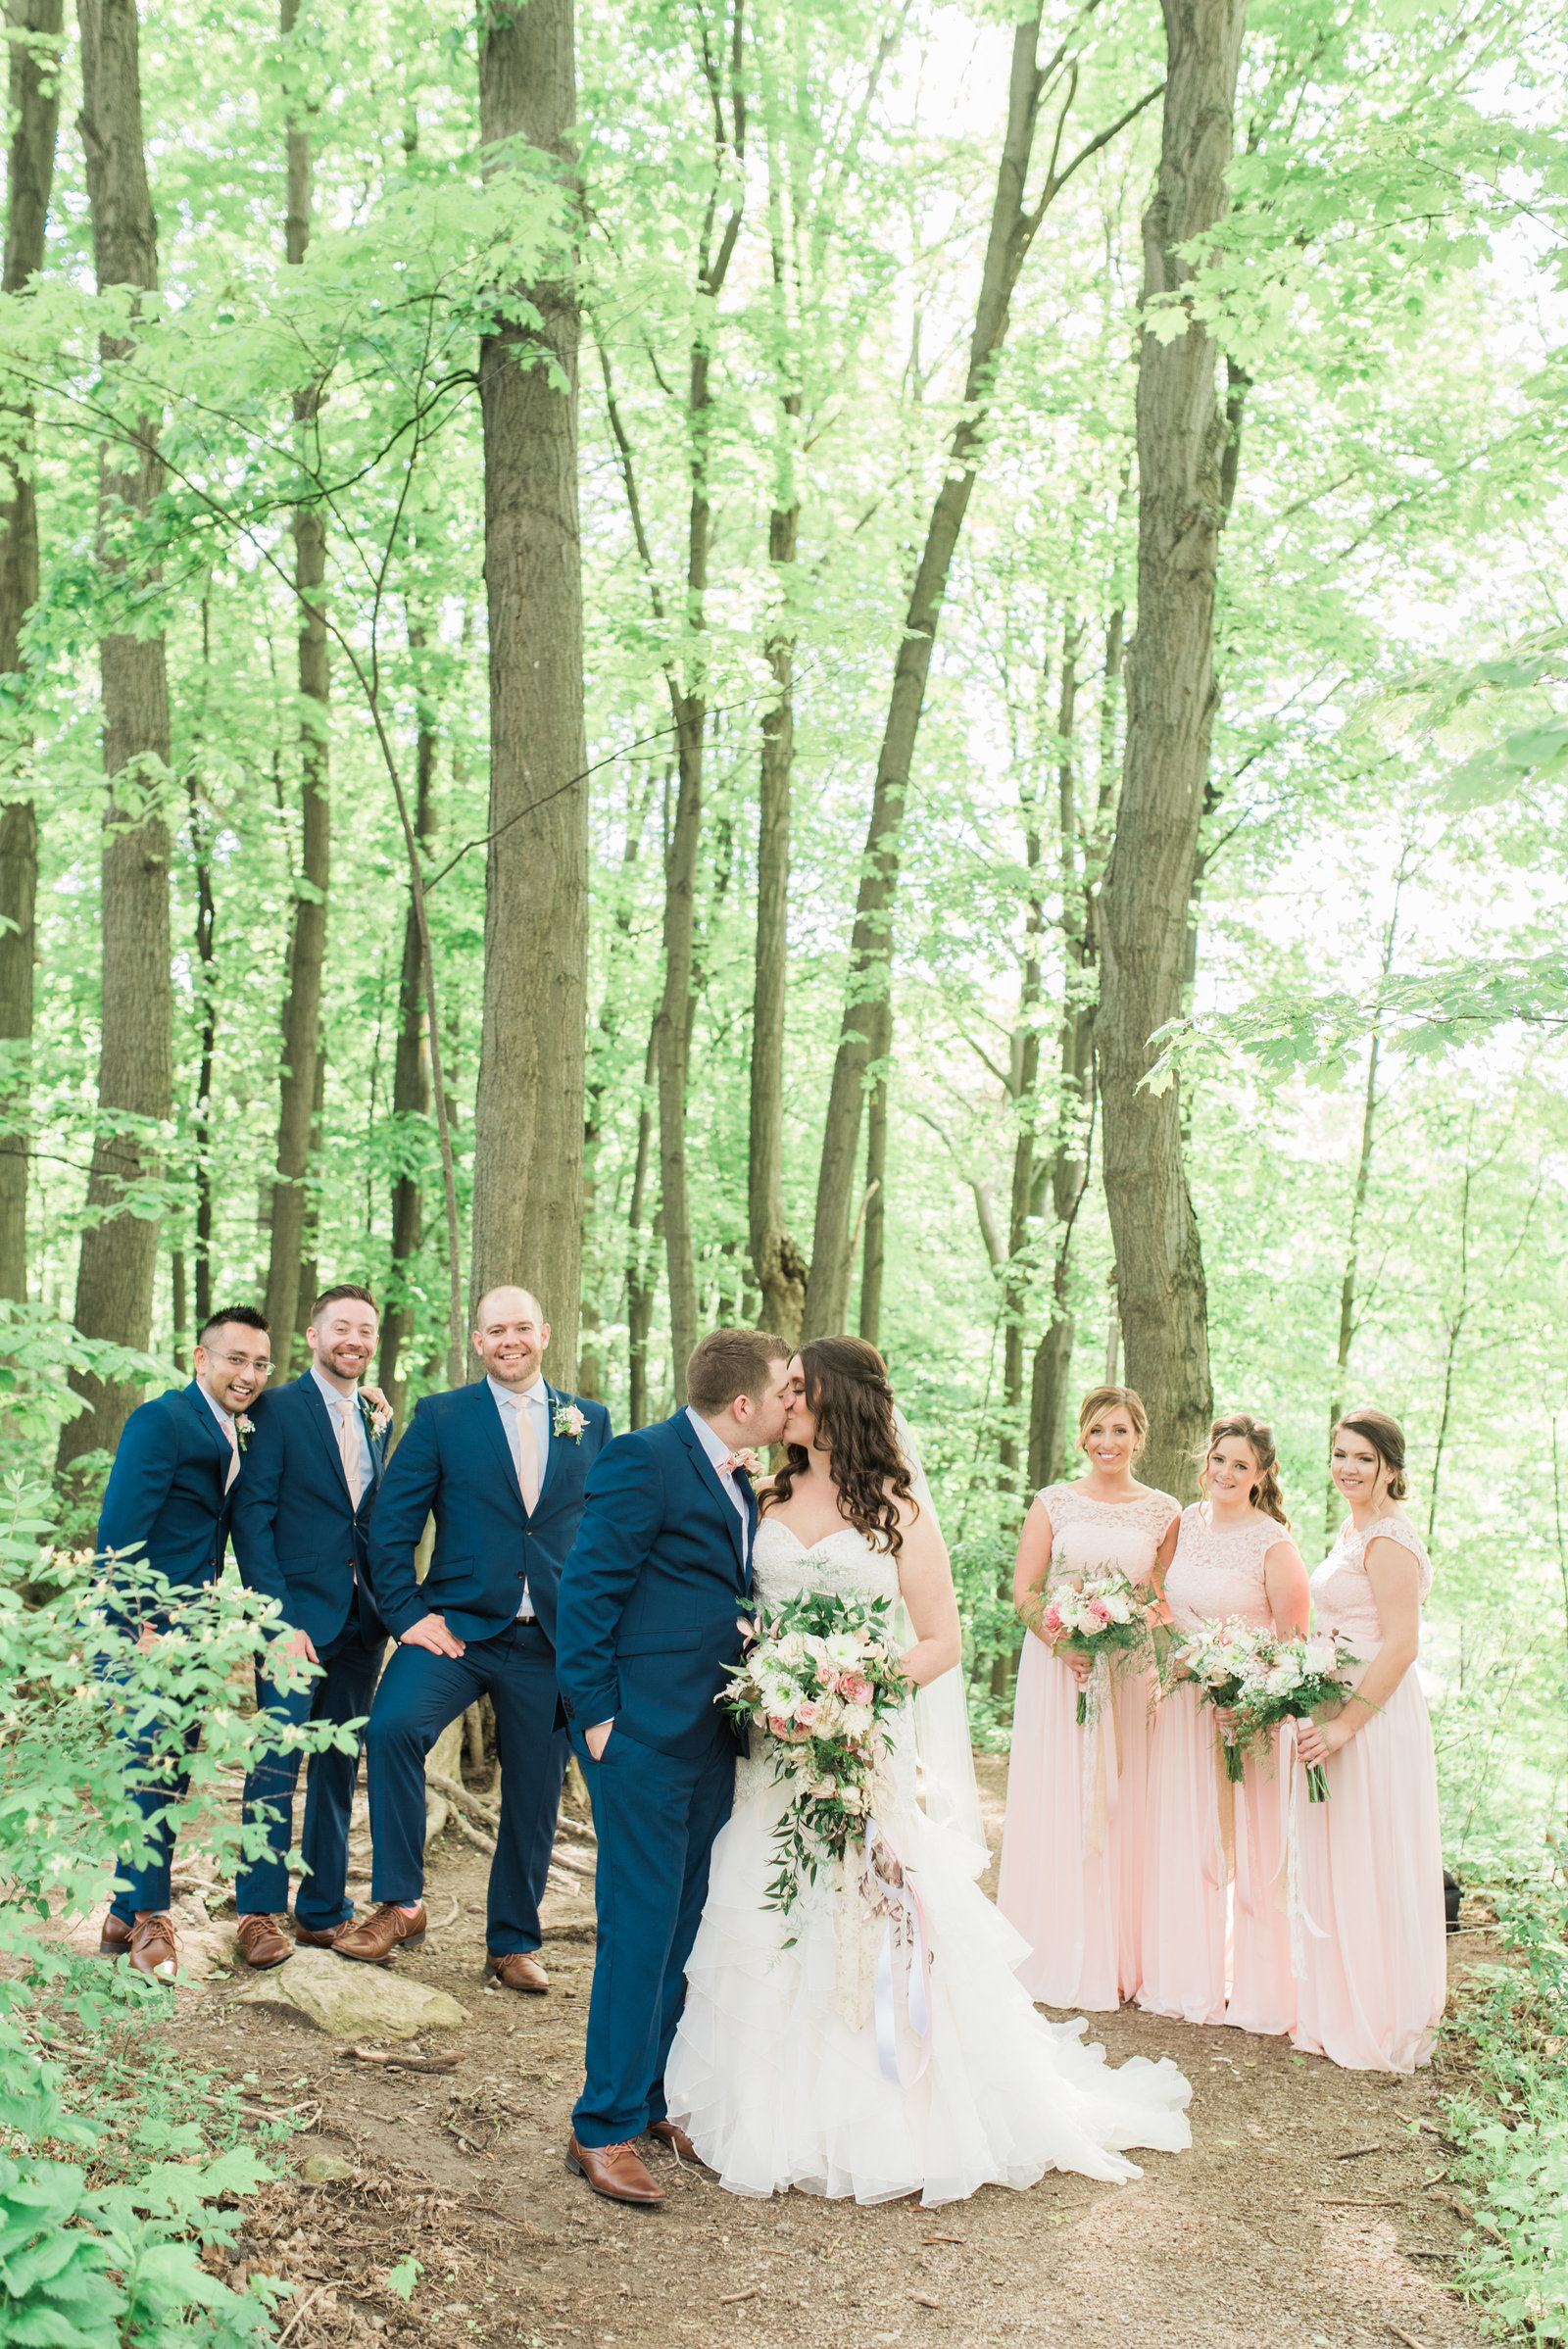 Sarah + Matt Sneak Peek-35